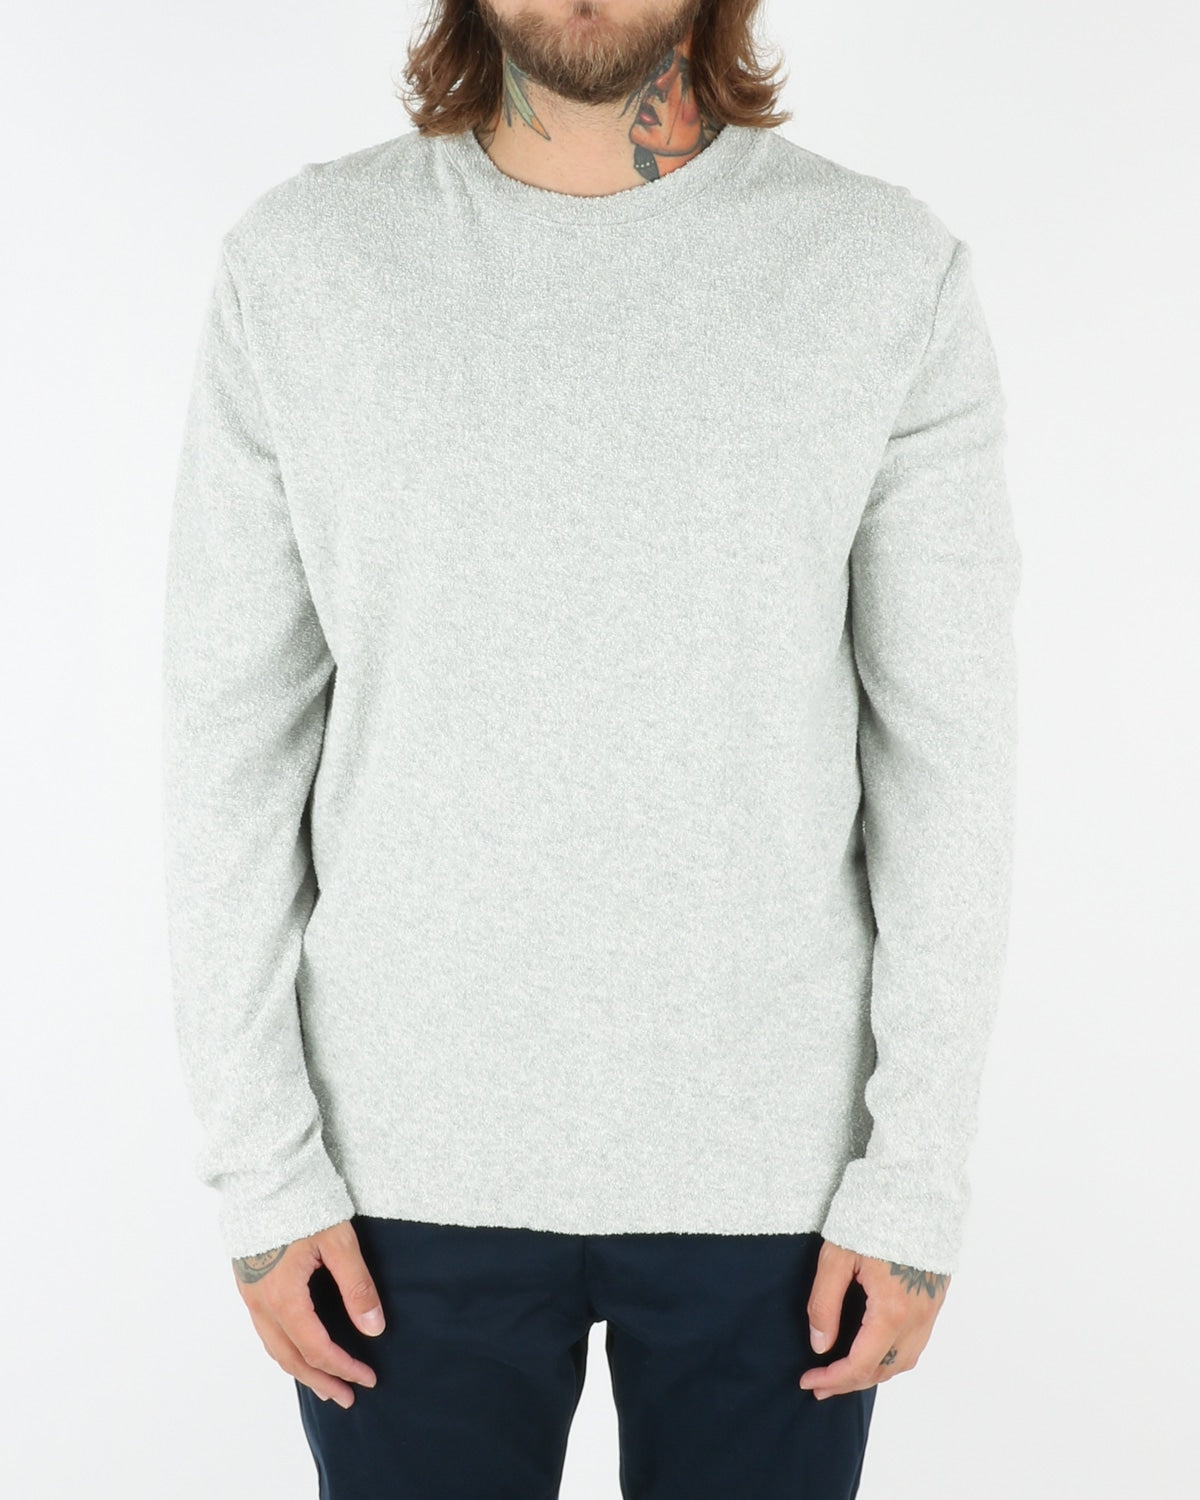 wac we are copenhange_giaccherini_o-neck_longsleeve_ecru melange_view_1_3